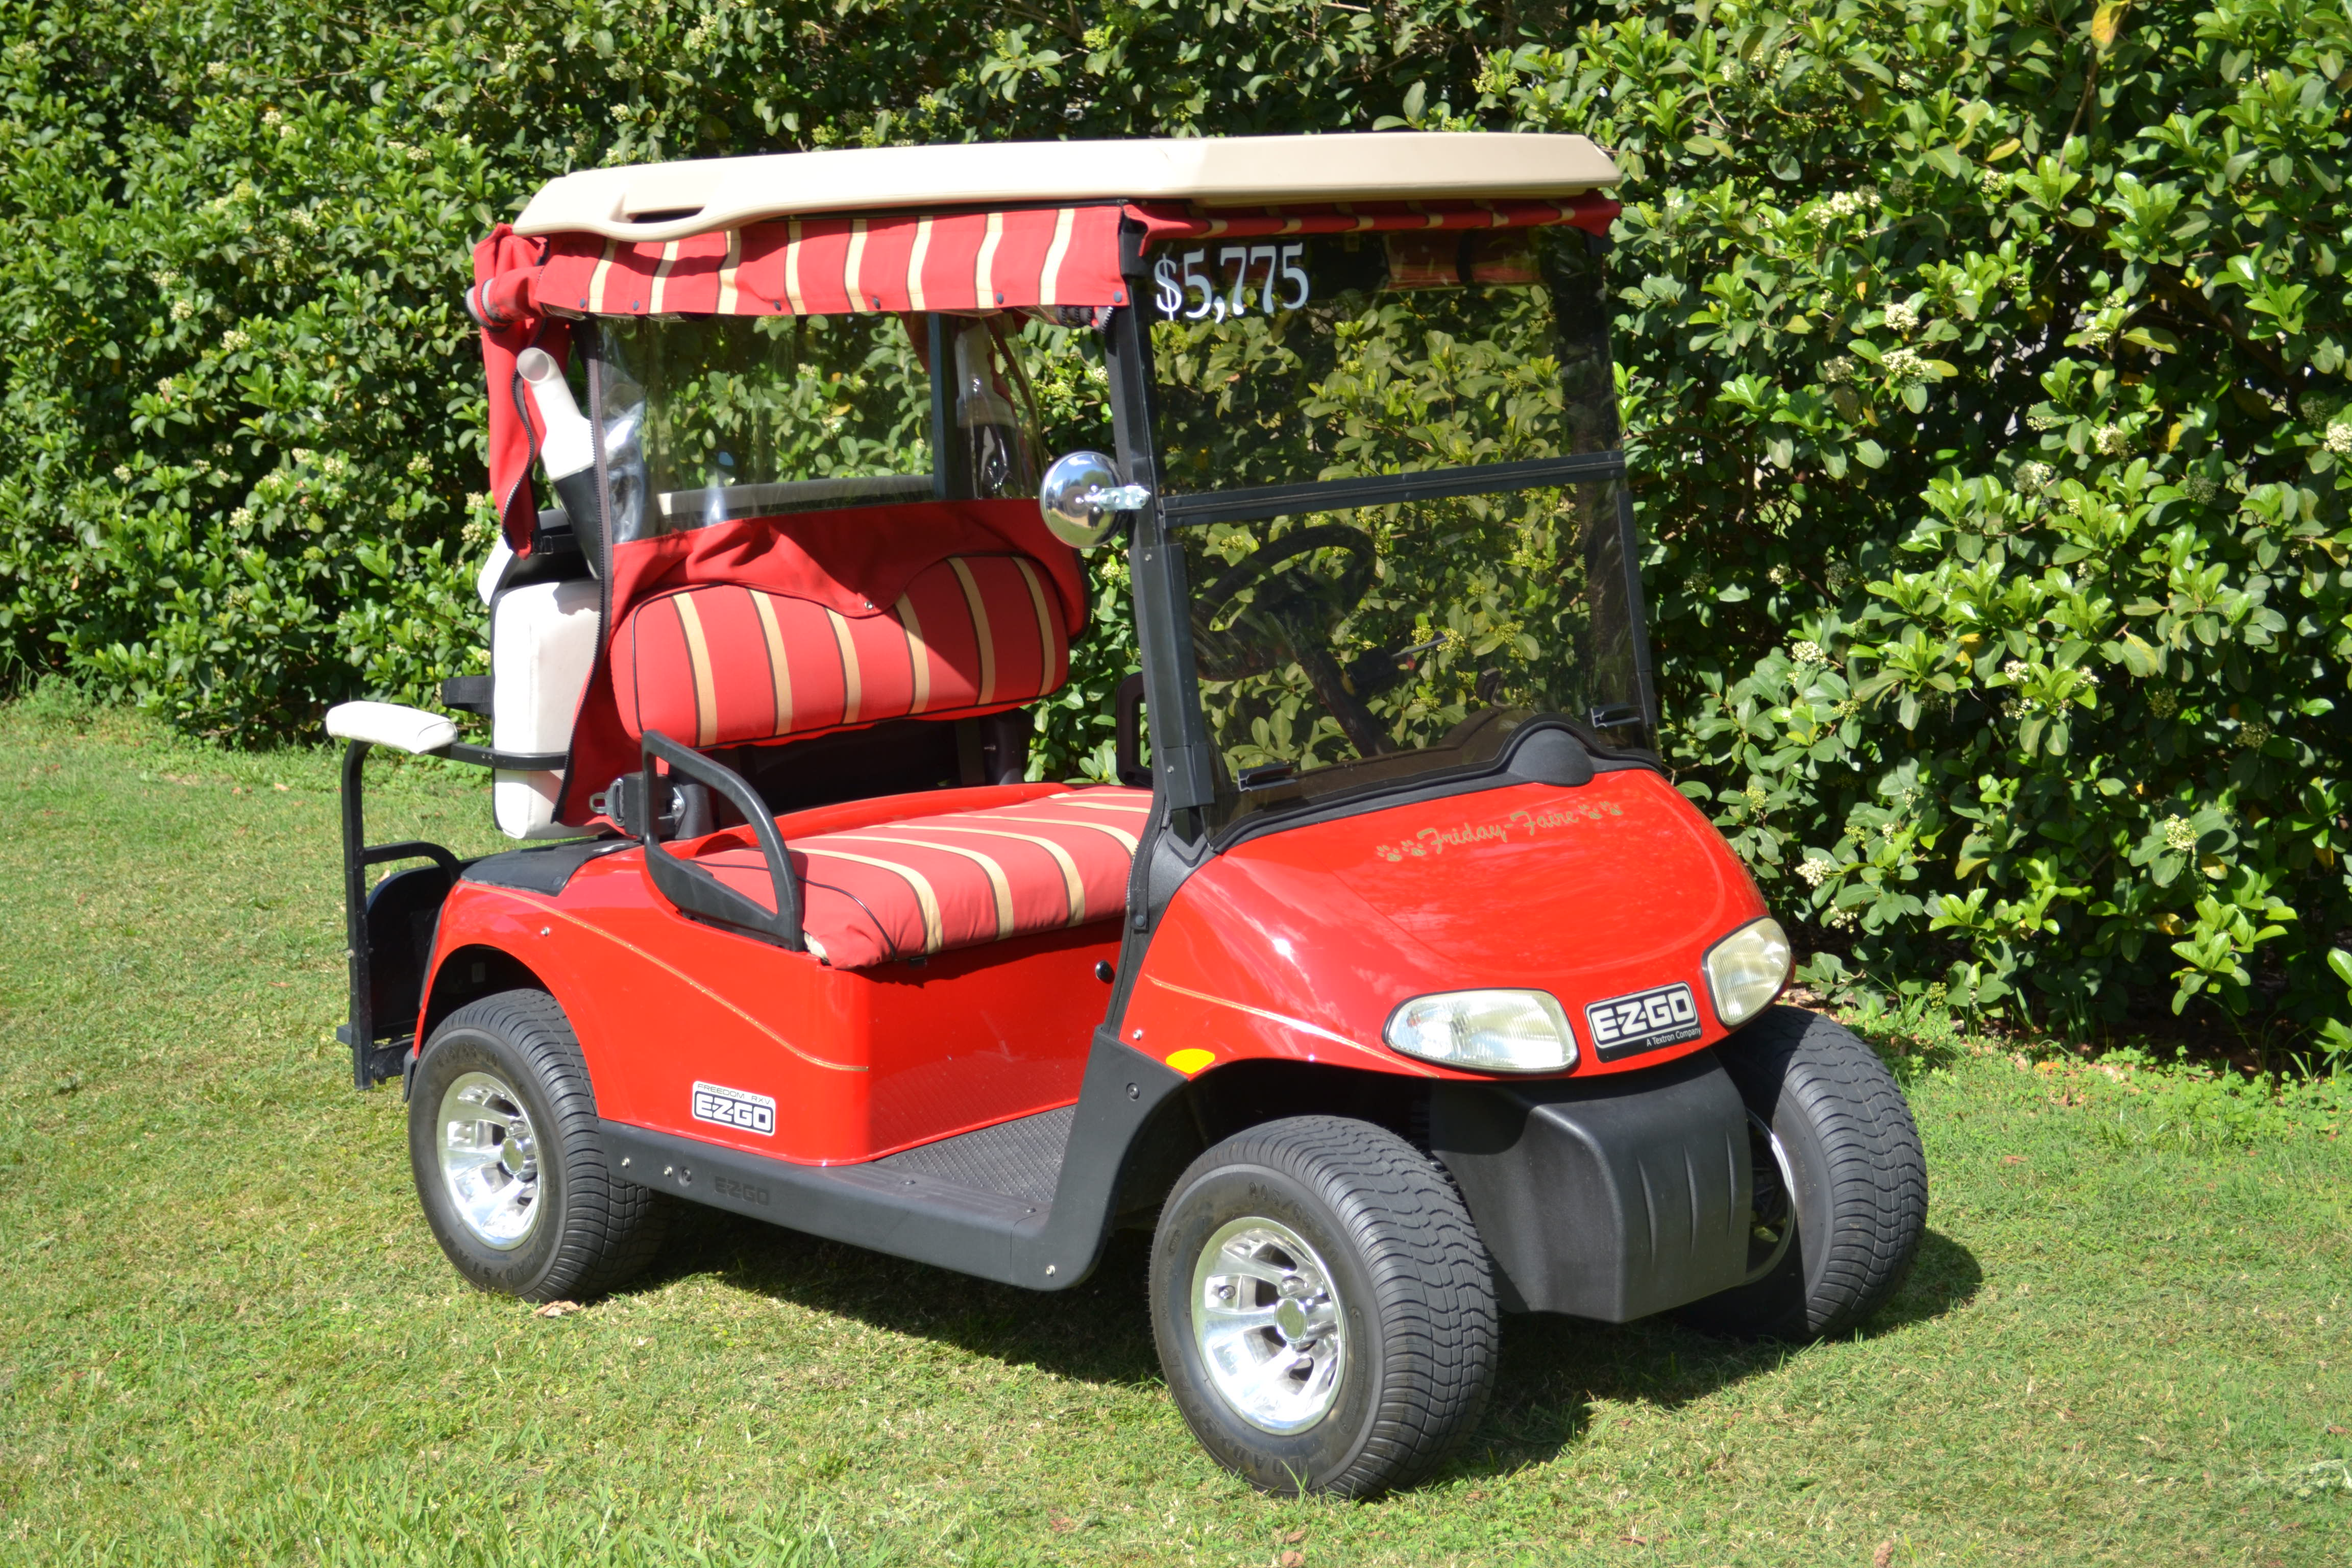 2009 EZ-GO: $5,775.00; Converted from 4-12 volt to 6-8 volt batteries for more distance; 4-seat capable with fold-N-go seat; Still can carry golf bags with no extension; 1 owner cart; Custom Rims